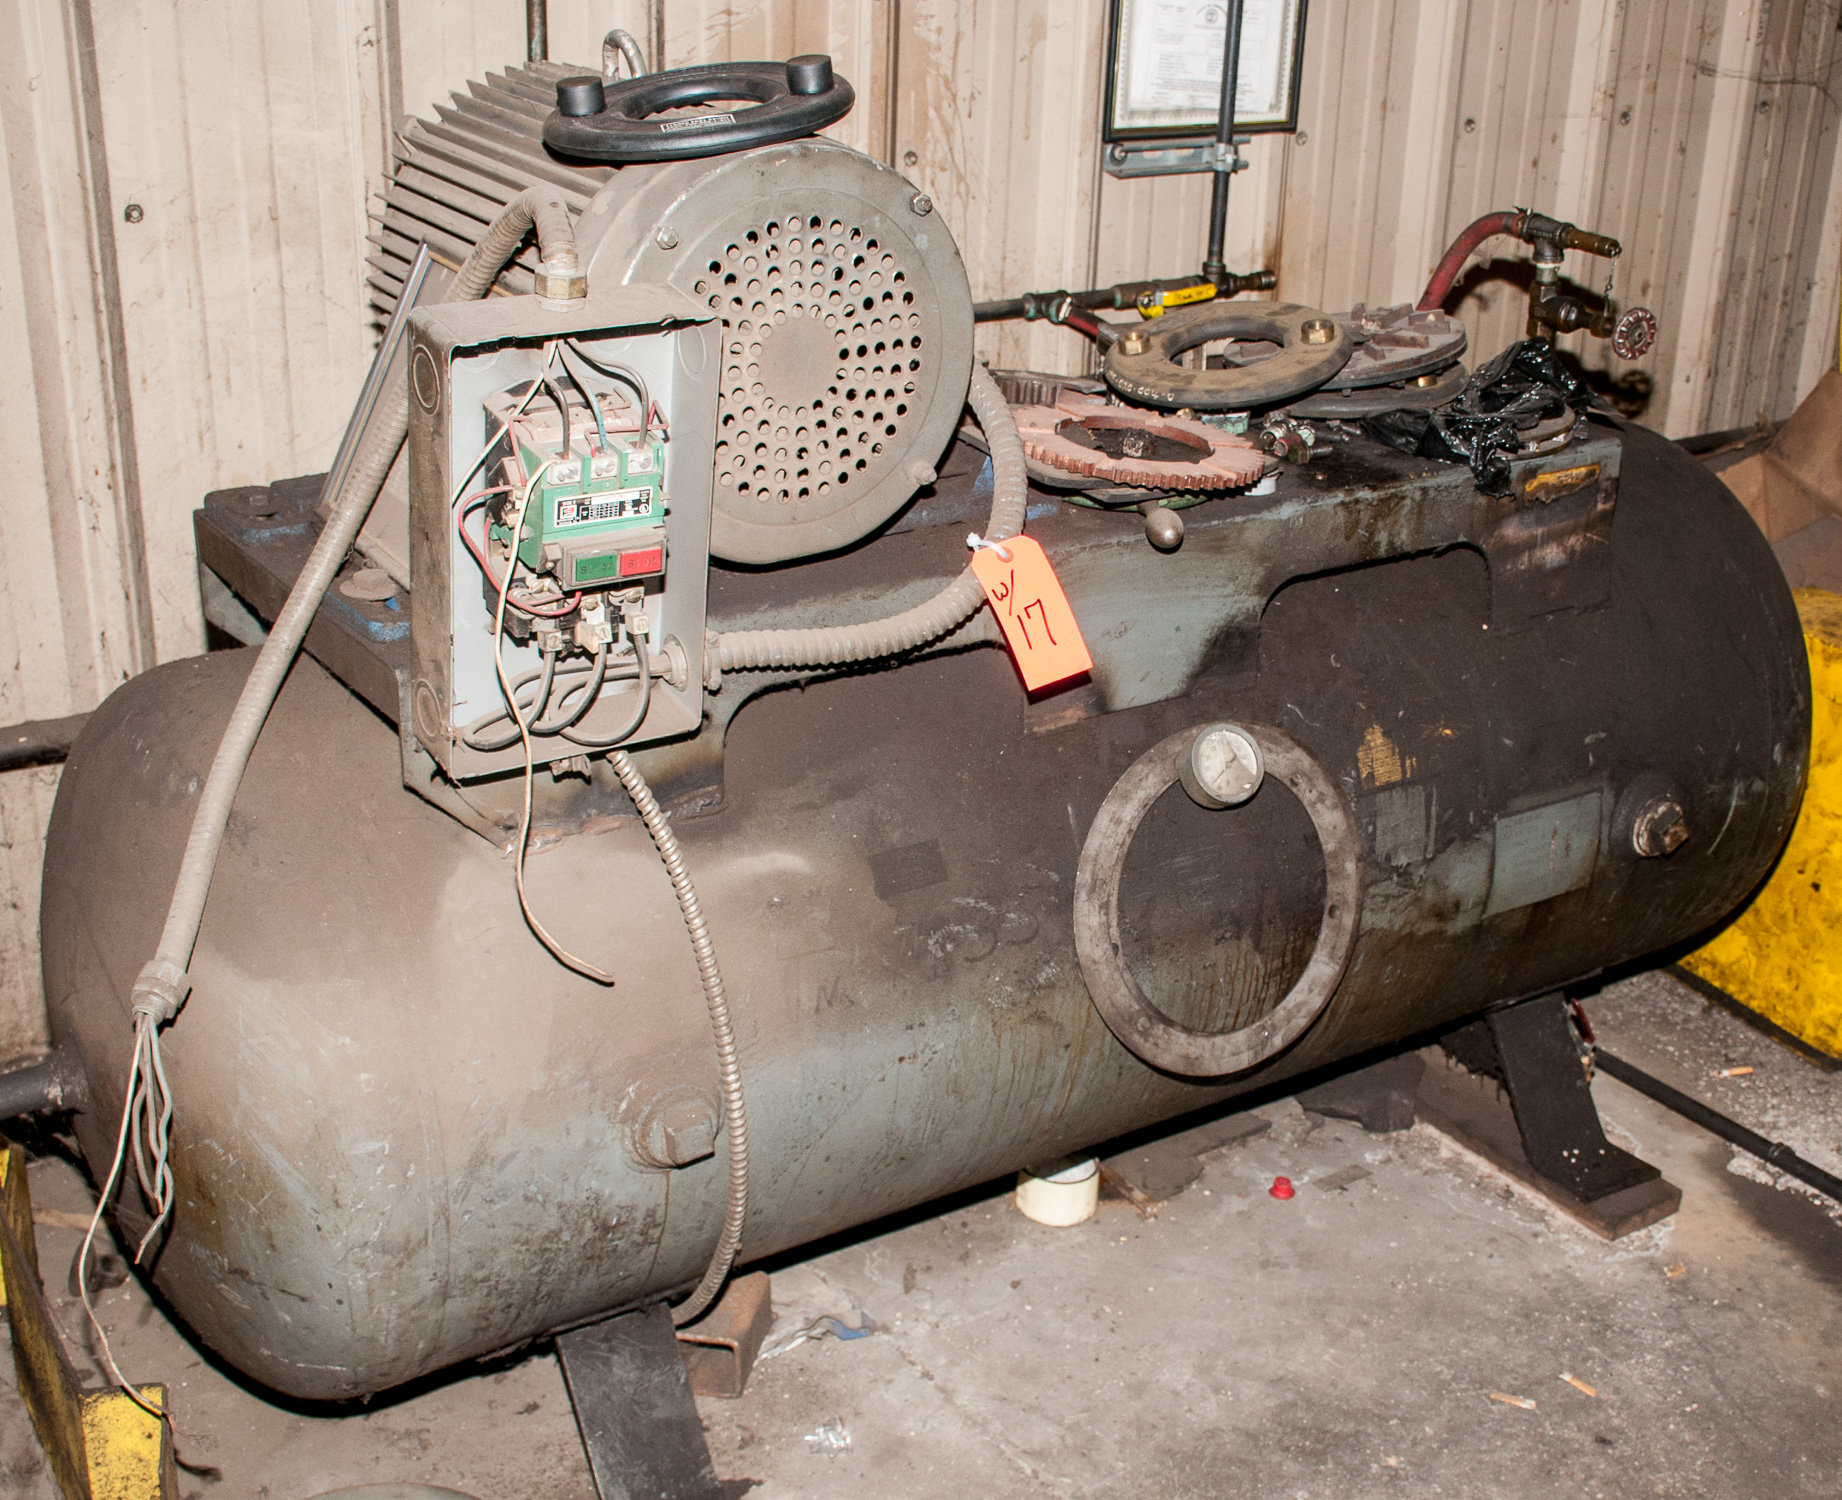 Pacemaker Air Compressor Mdl HT62B, s/n 3815, 220v, 20 hp, Estimate 80 Gal. Horizontal Tank, w/ - Image 3 of 3